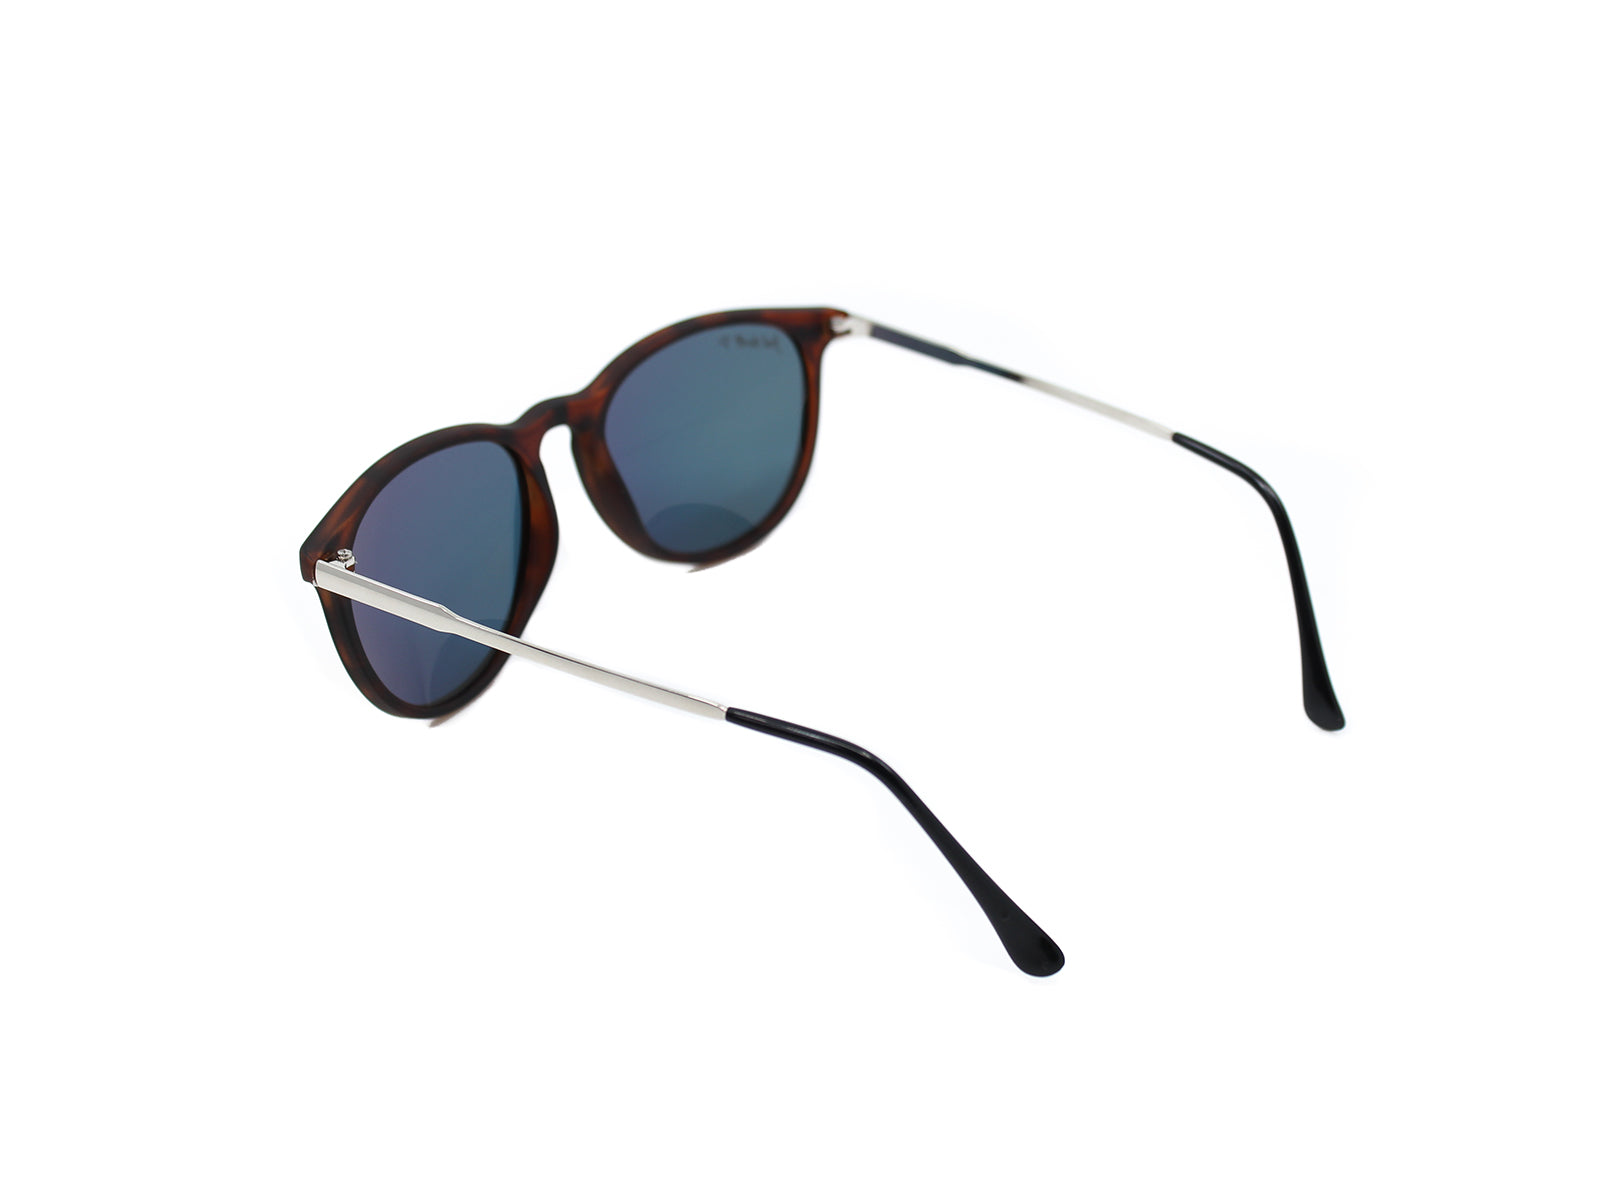 Porters - Hanovers: Tortoise/ Mirrored Blue Polarized